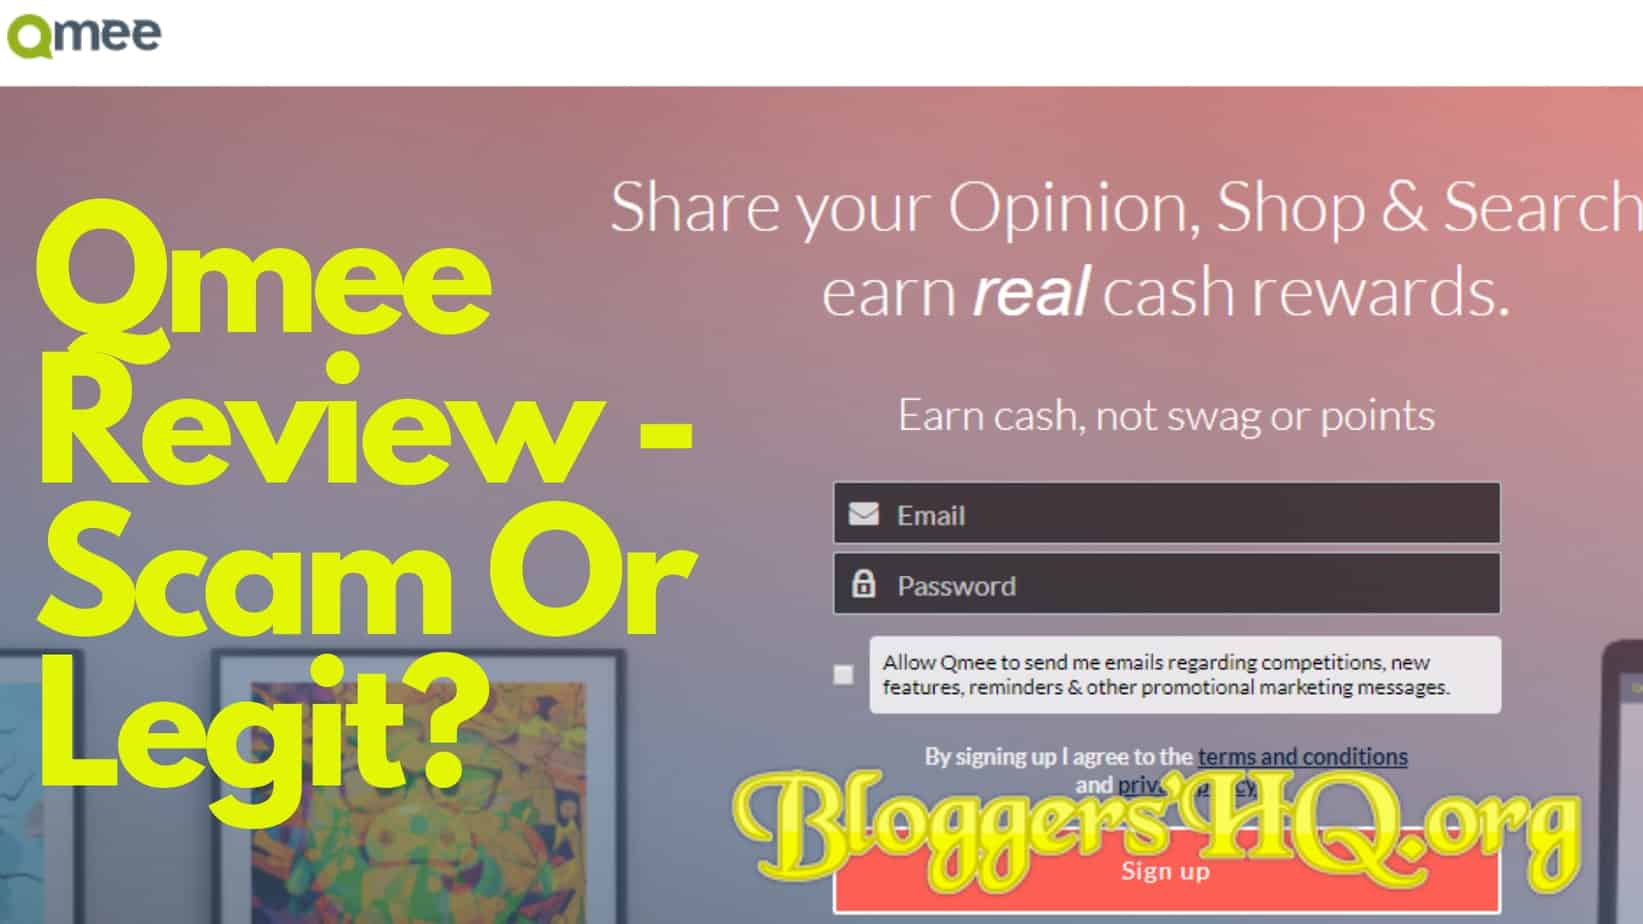 QMee Review – Scam Or Legit? [REVEALED] | BloggersHQ Org